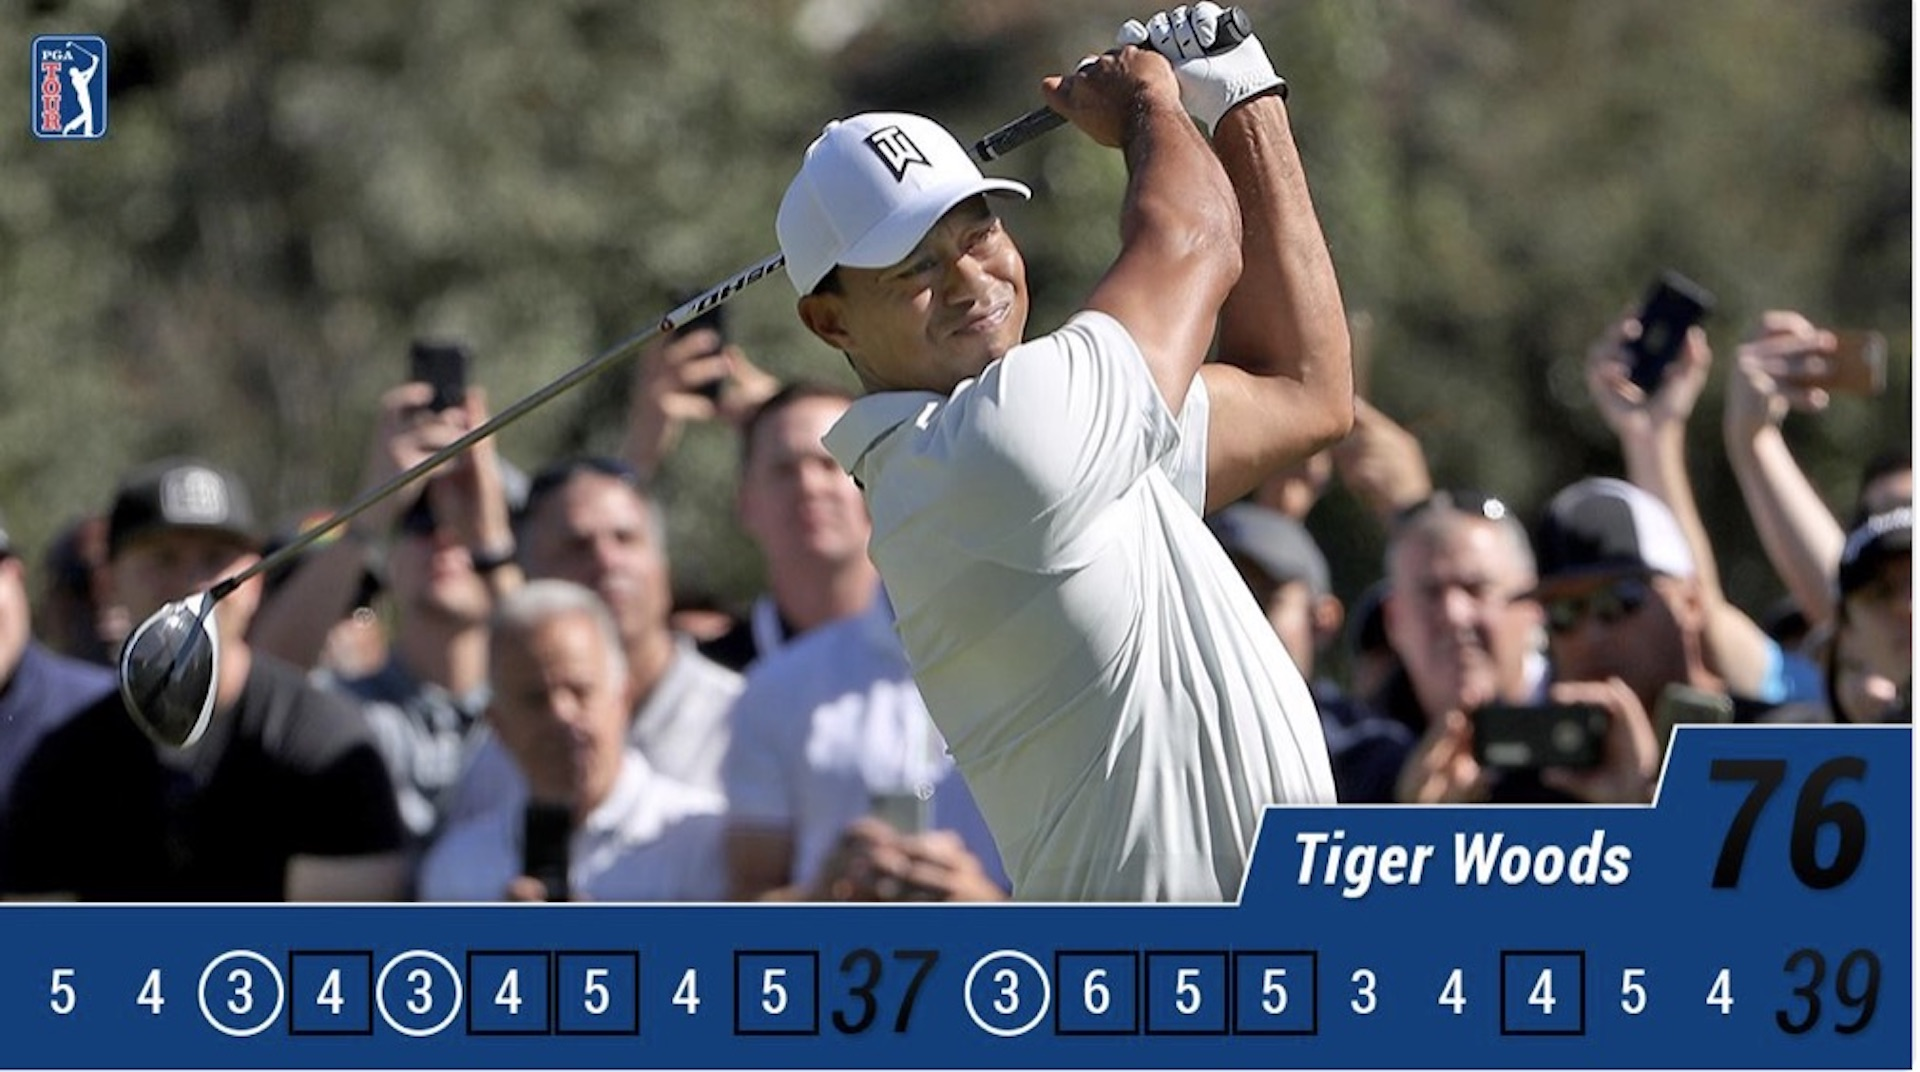 Tiger Woods misses the cut at Riviera